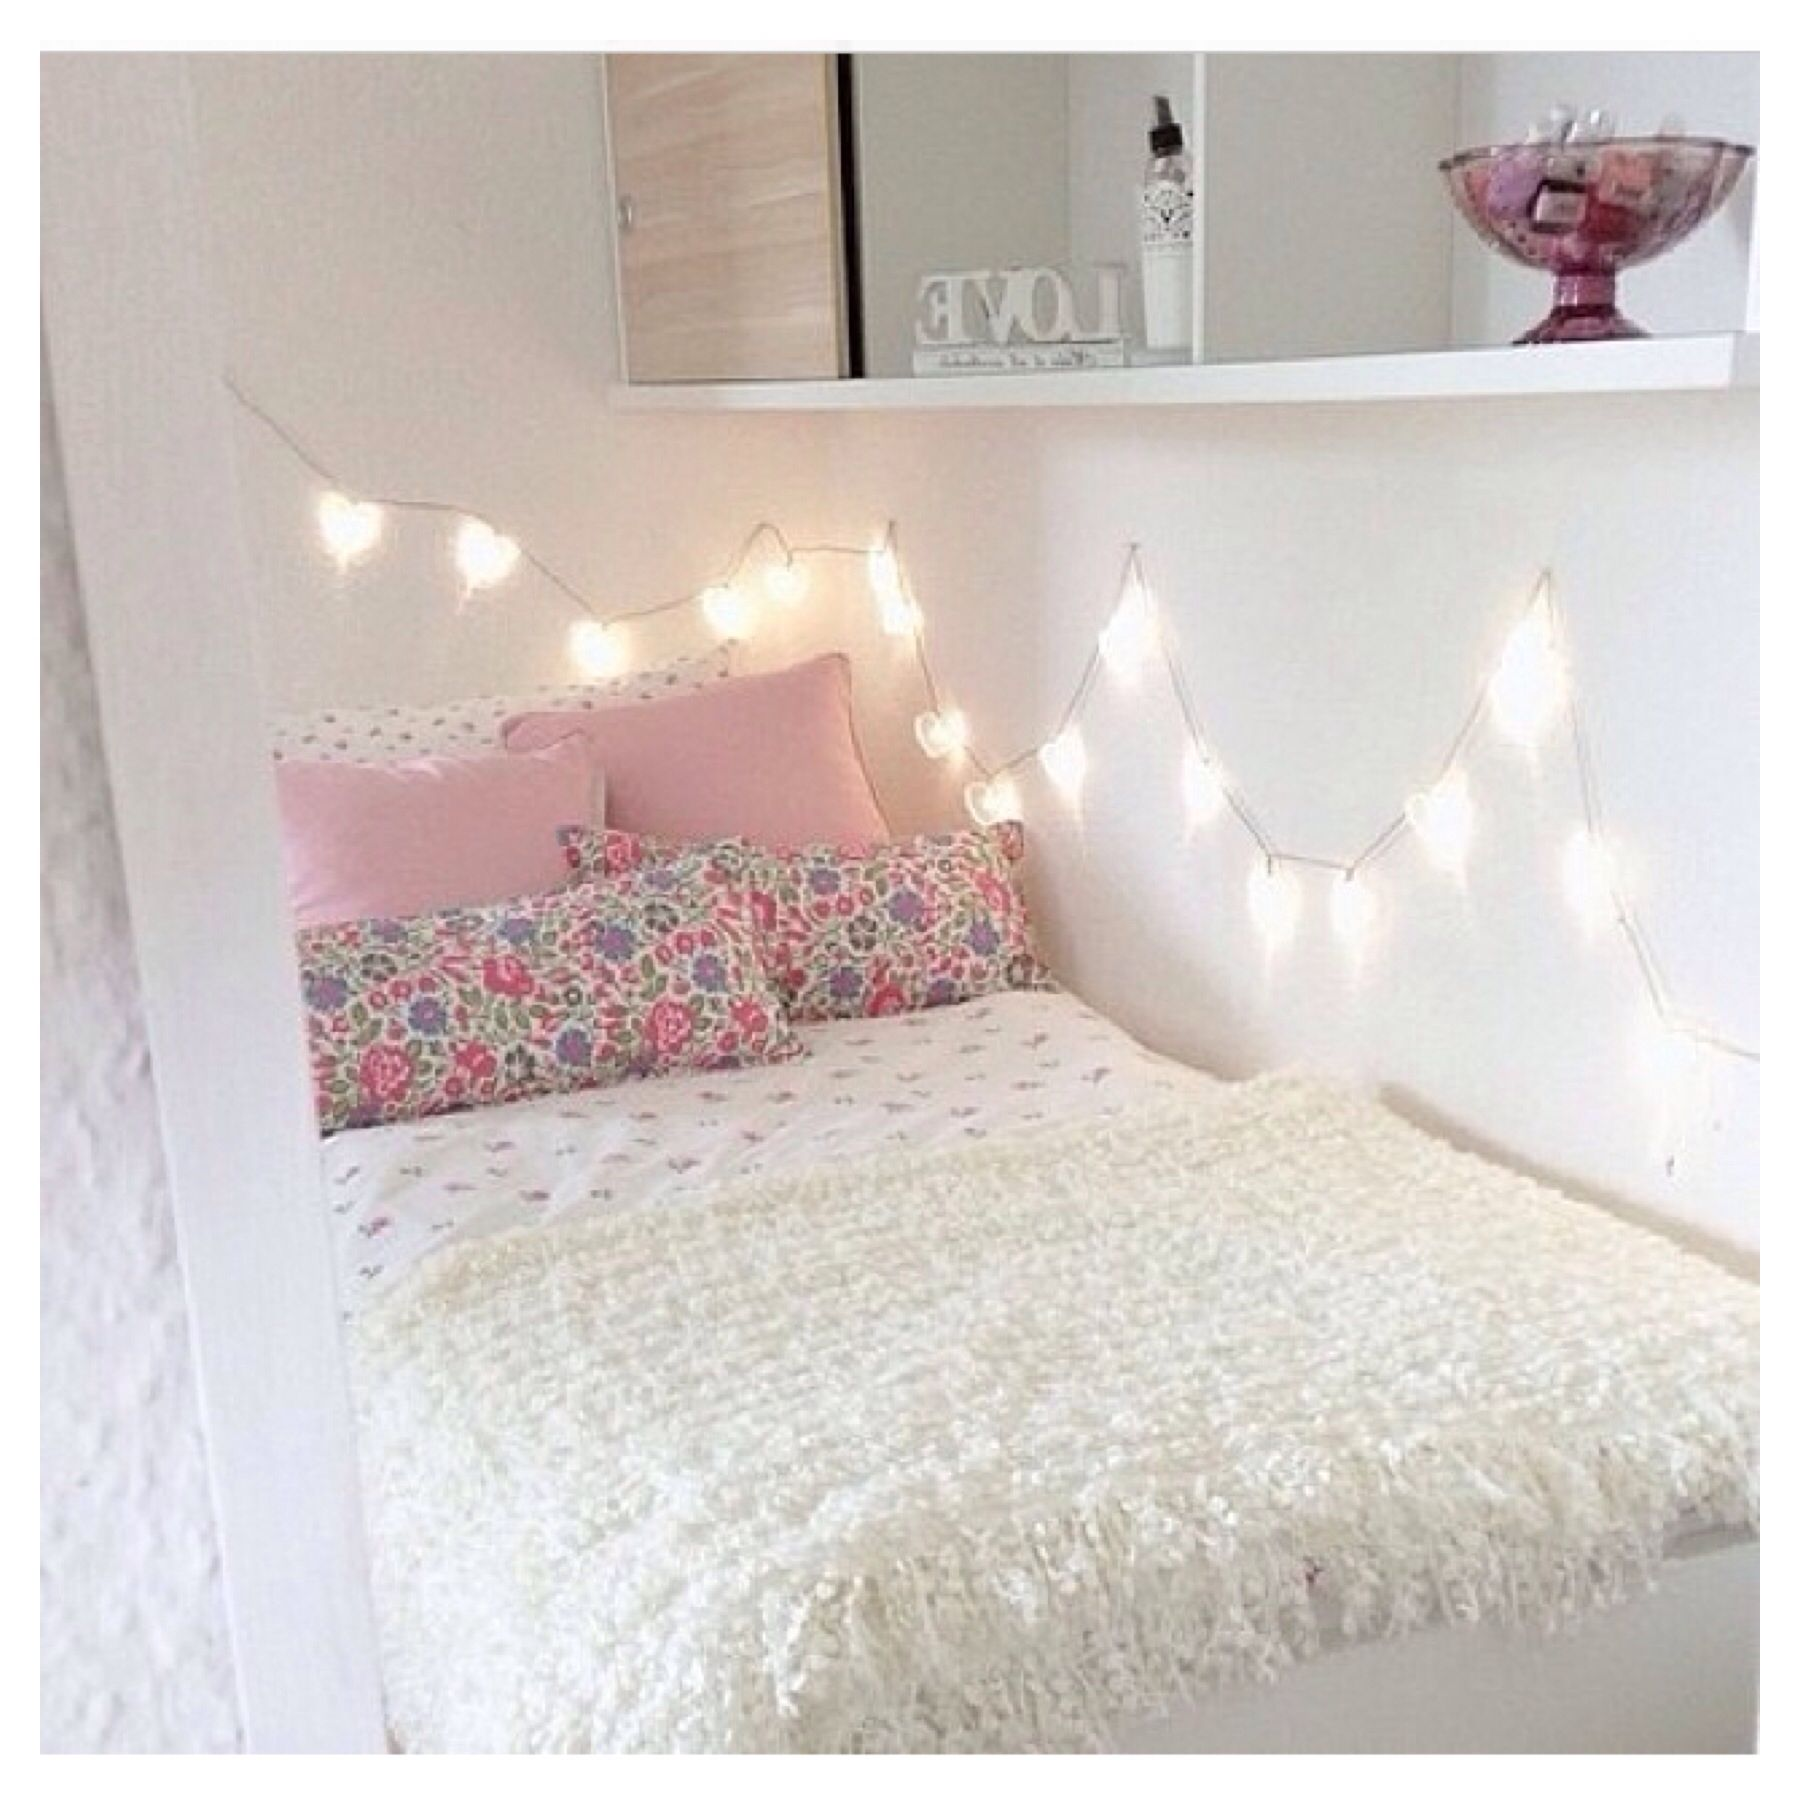 Fairy light room decor ideas for bedroom pinterest for Pretty room decor